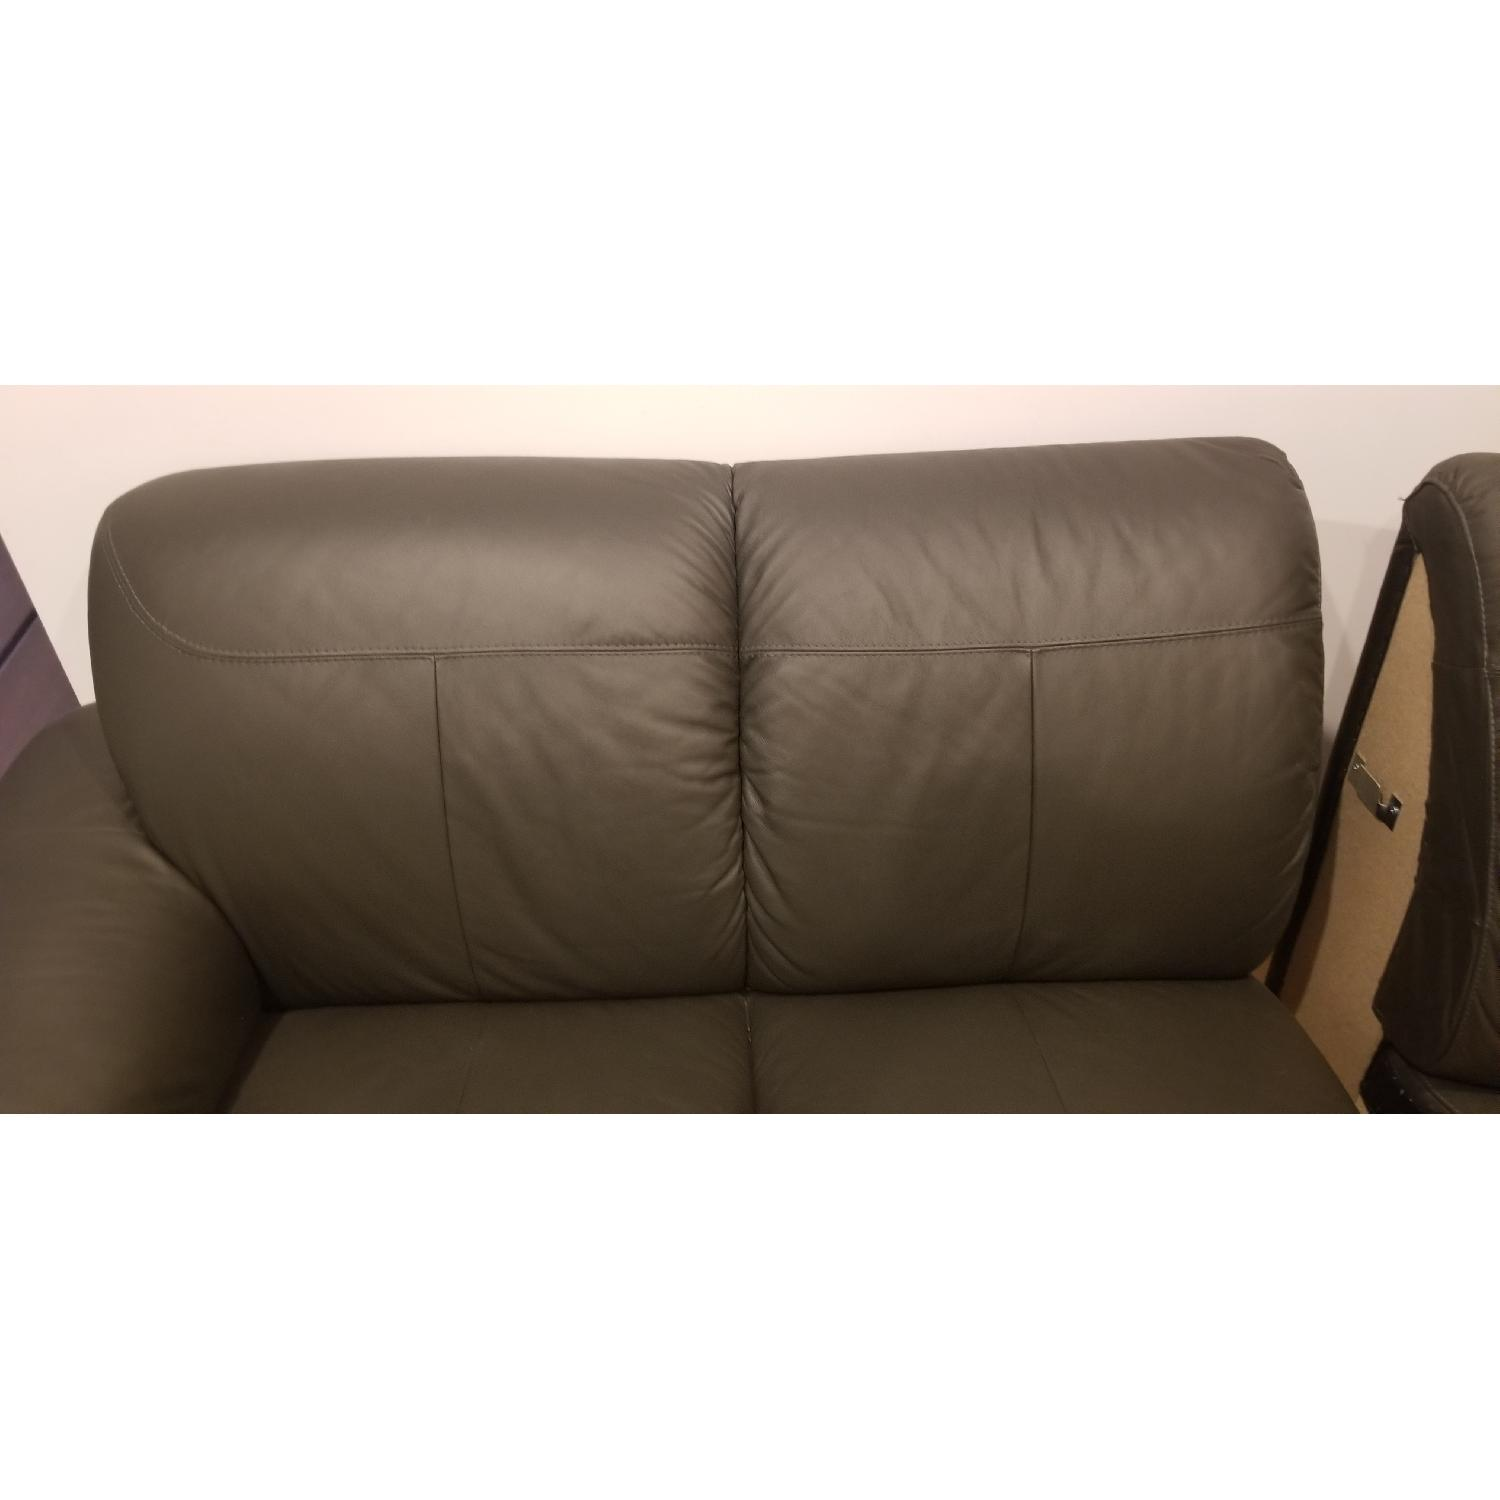 Ikea Timsfors Faux Leather Sectional Sofa - image-13